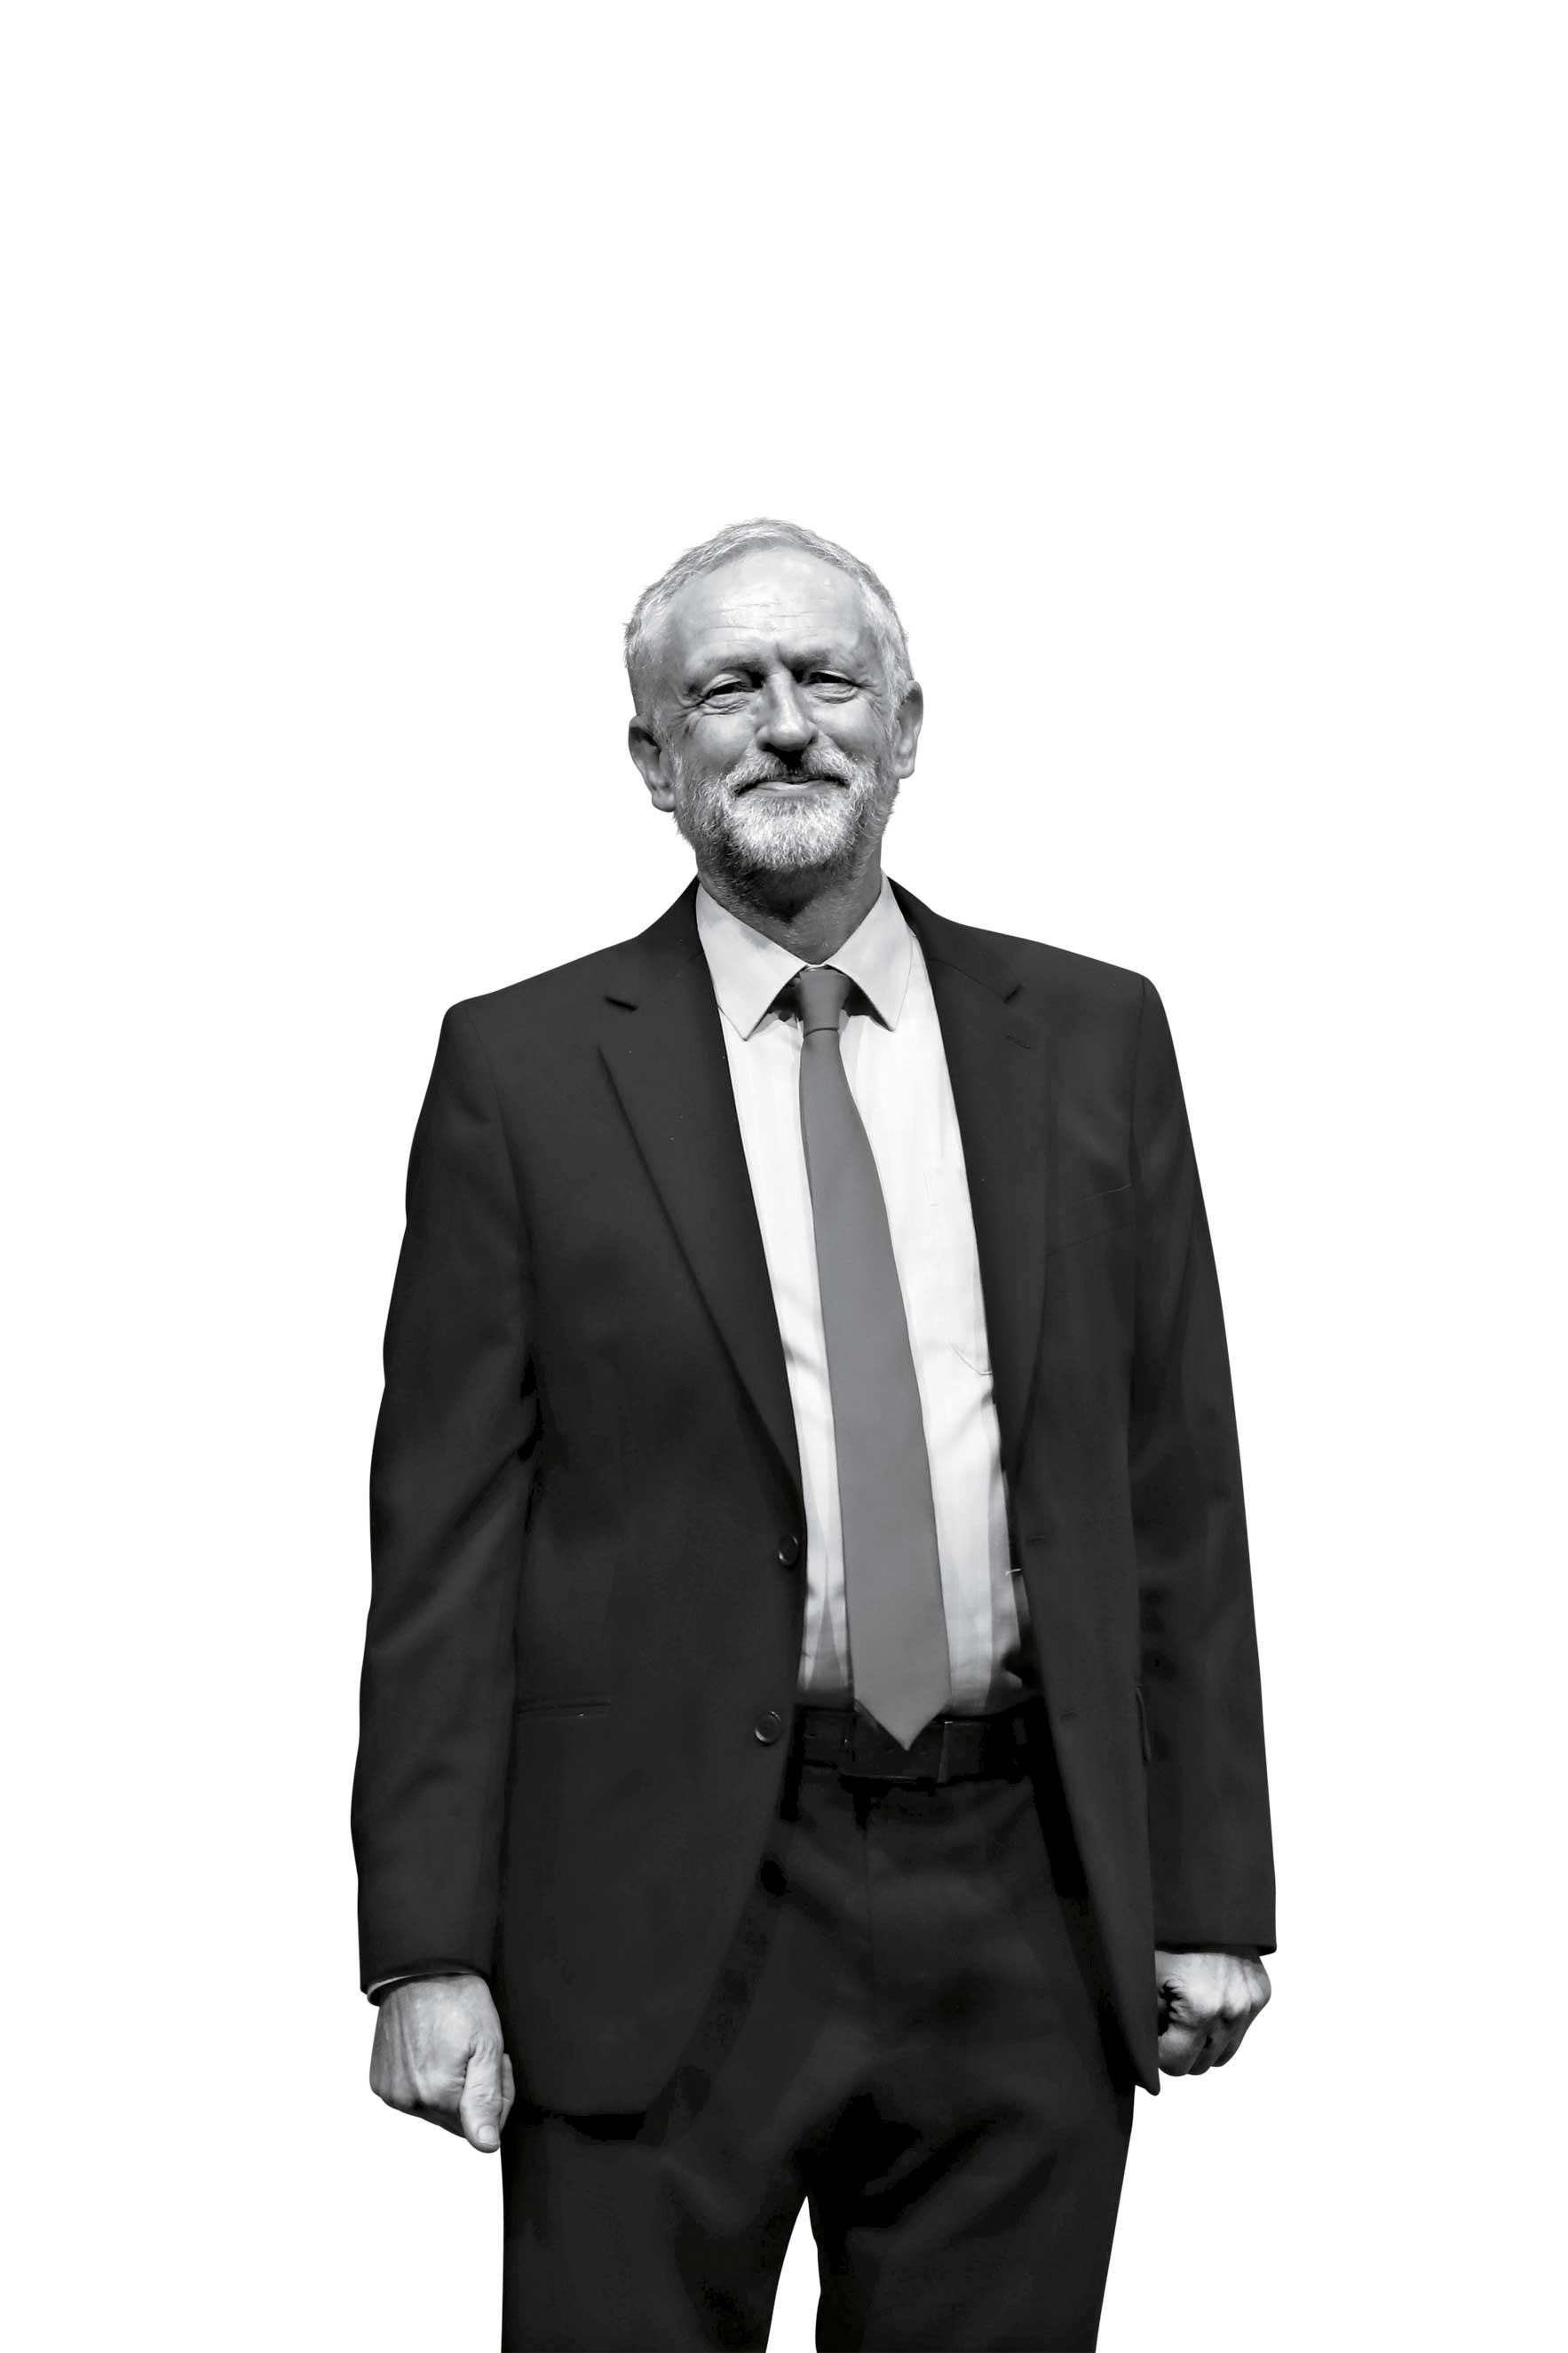 Jeremy Corbyn elected leader of the Labour Party for a second time, Liverpool.